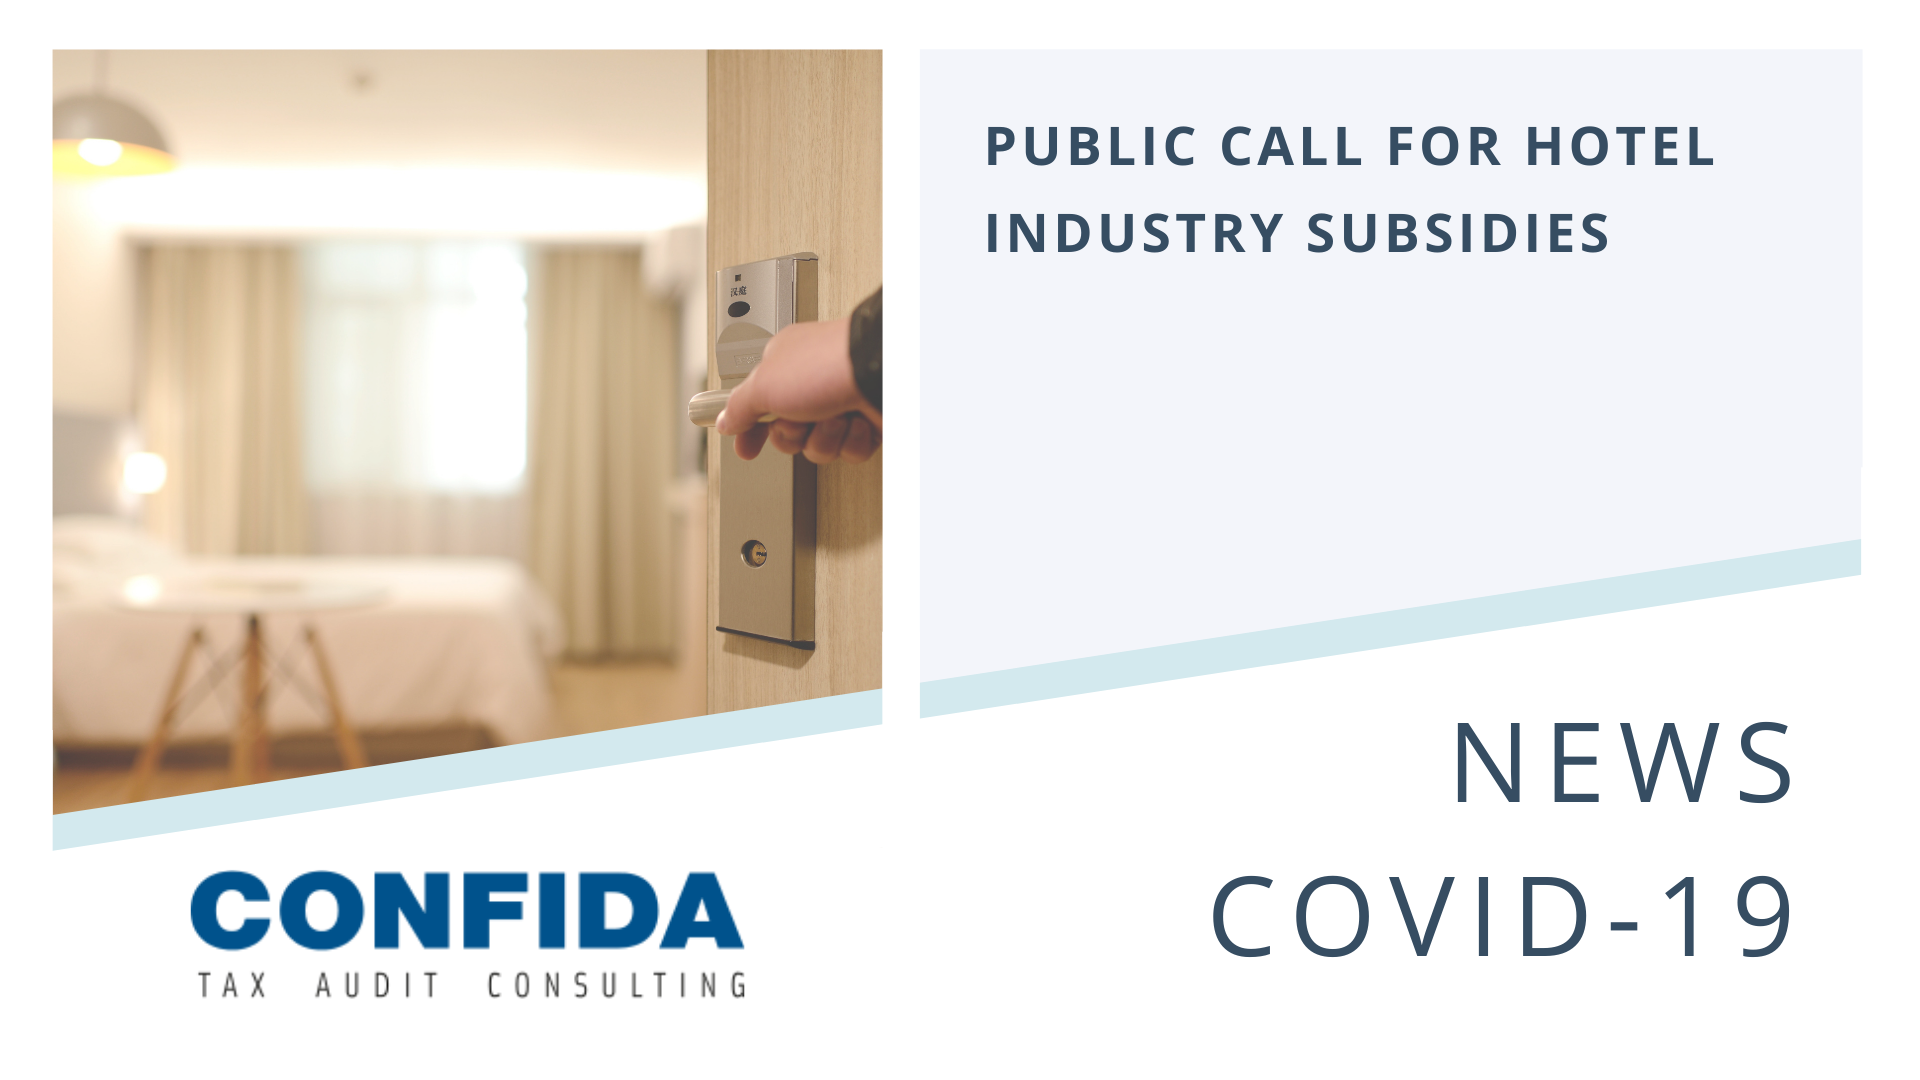 Public Call for Hotel Industry Subsidies